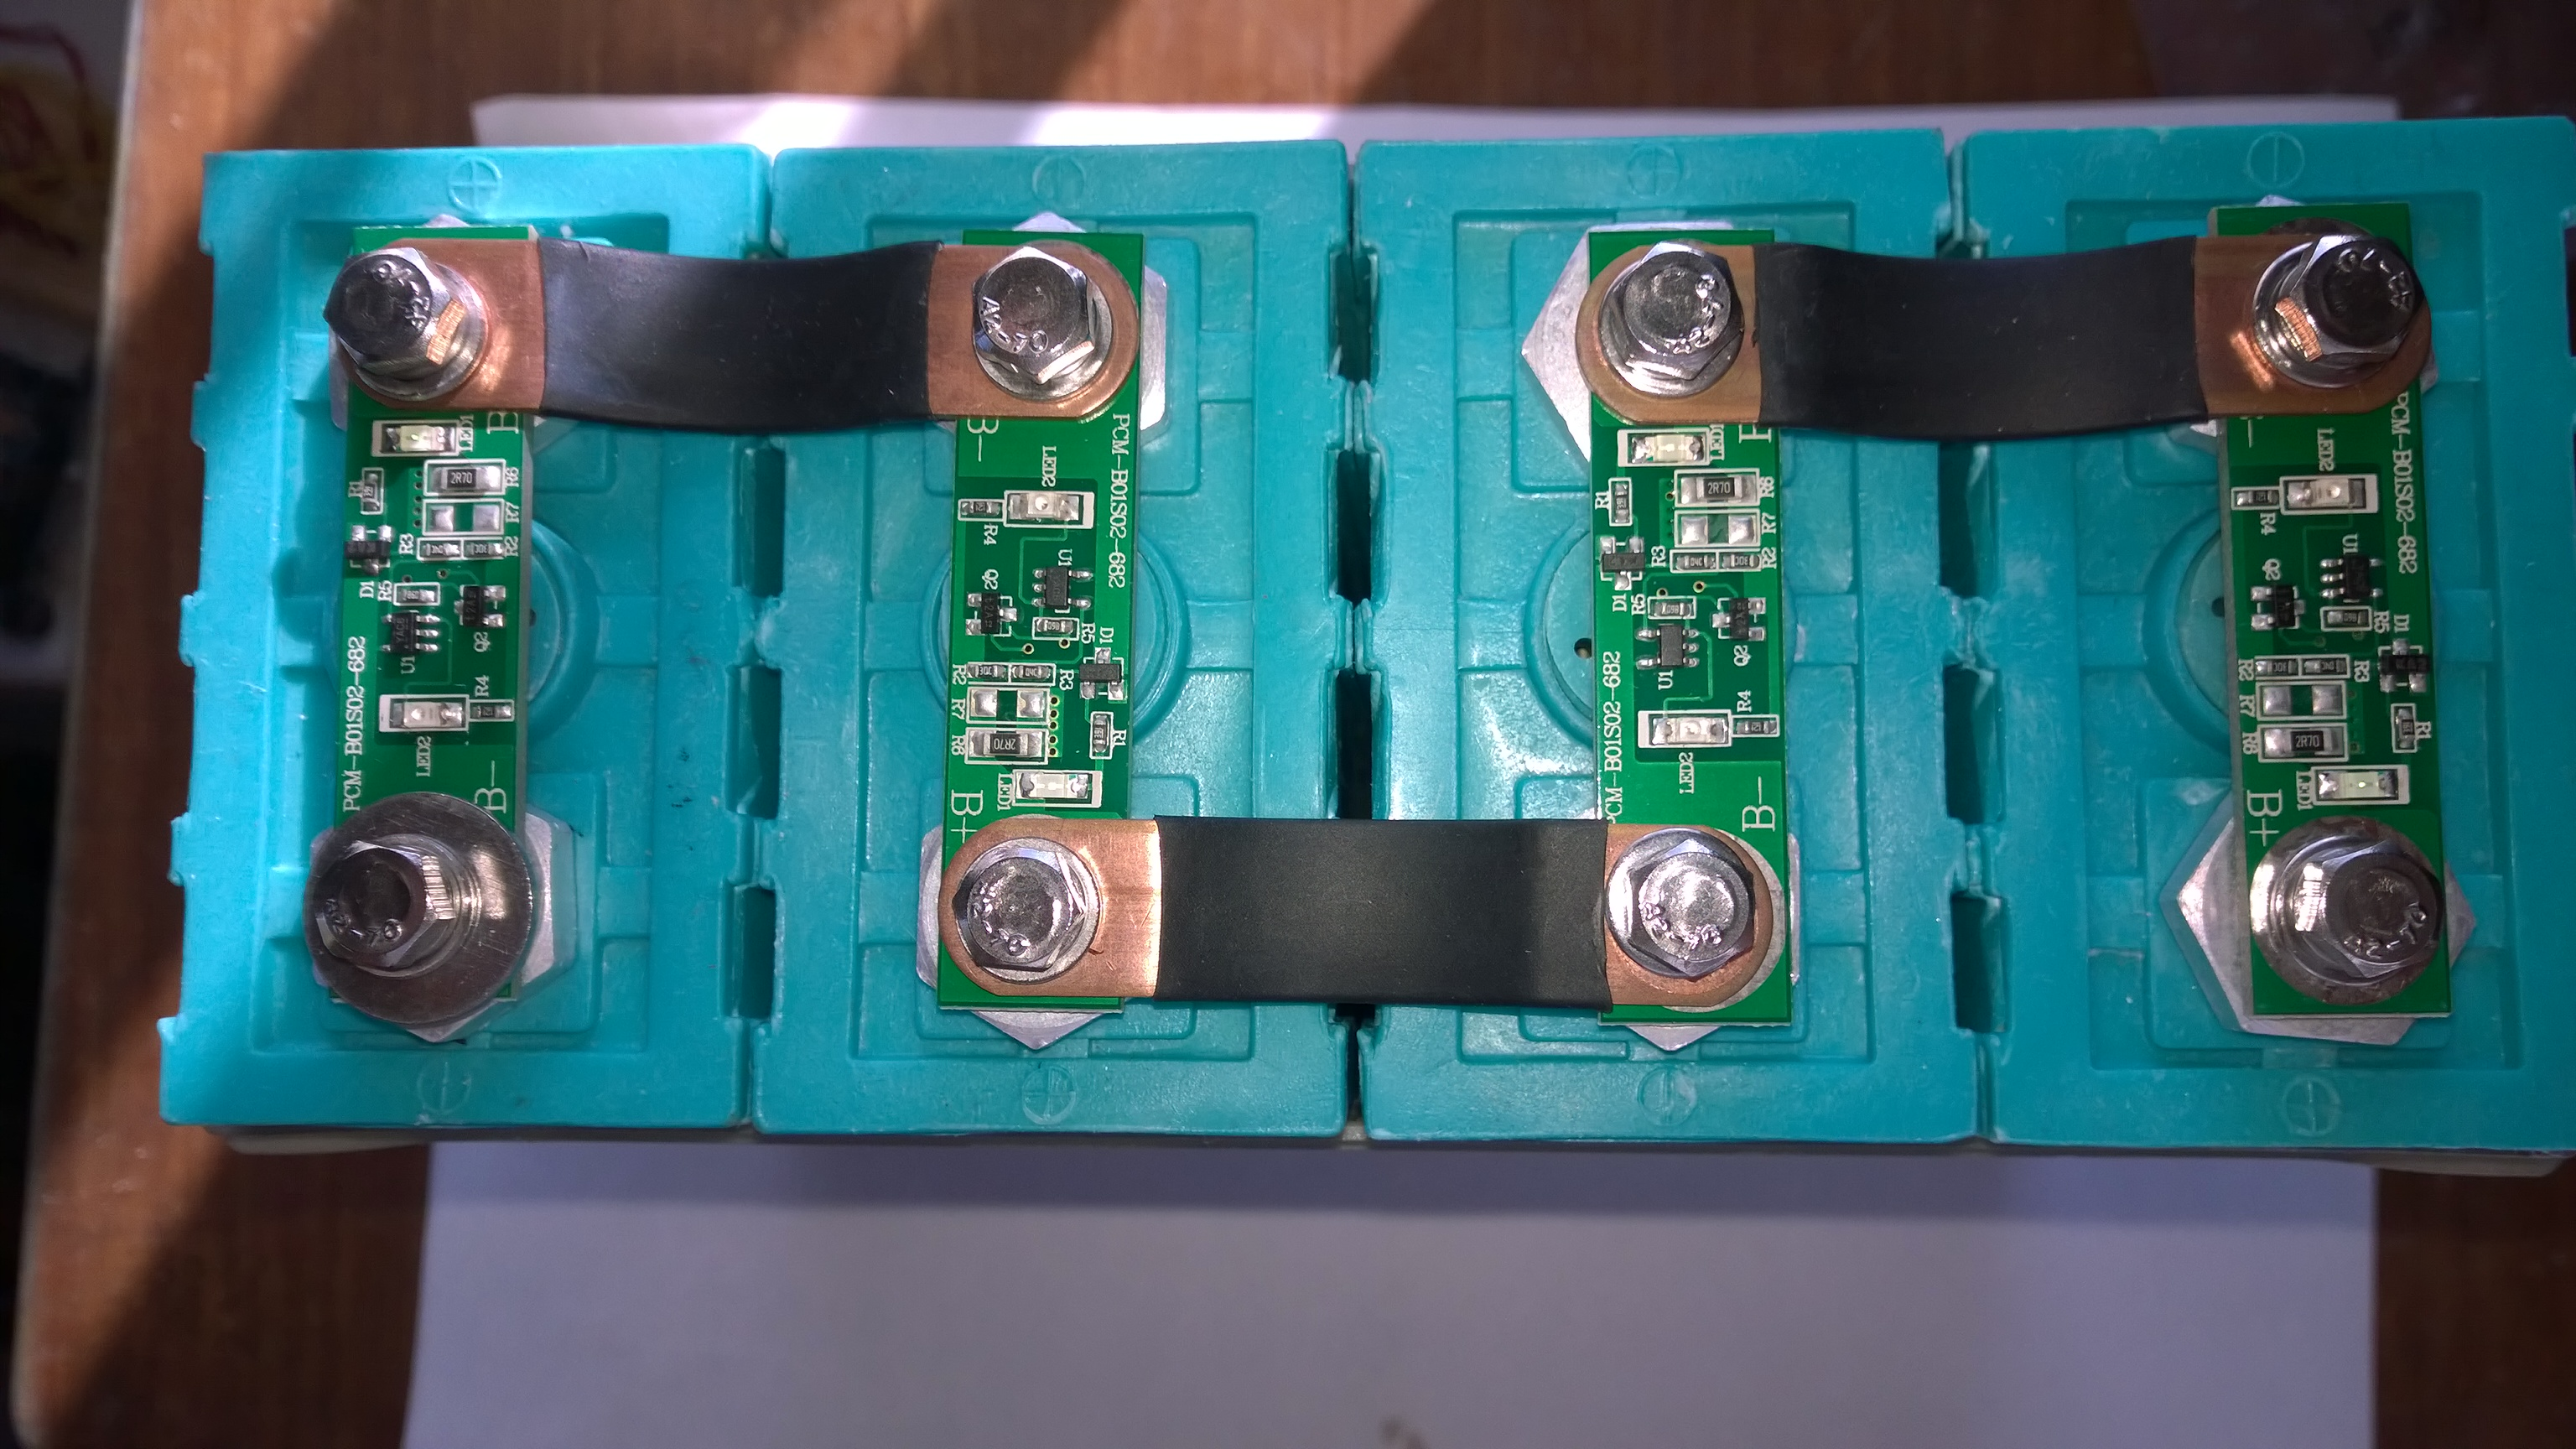 12 volt battery pack with led balancer modules